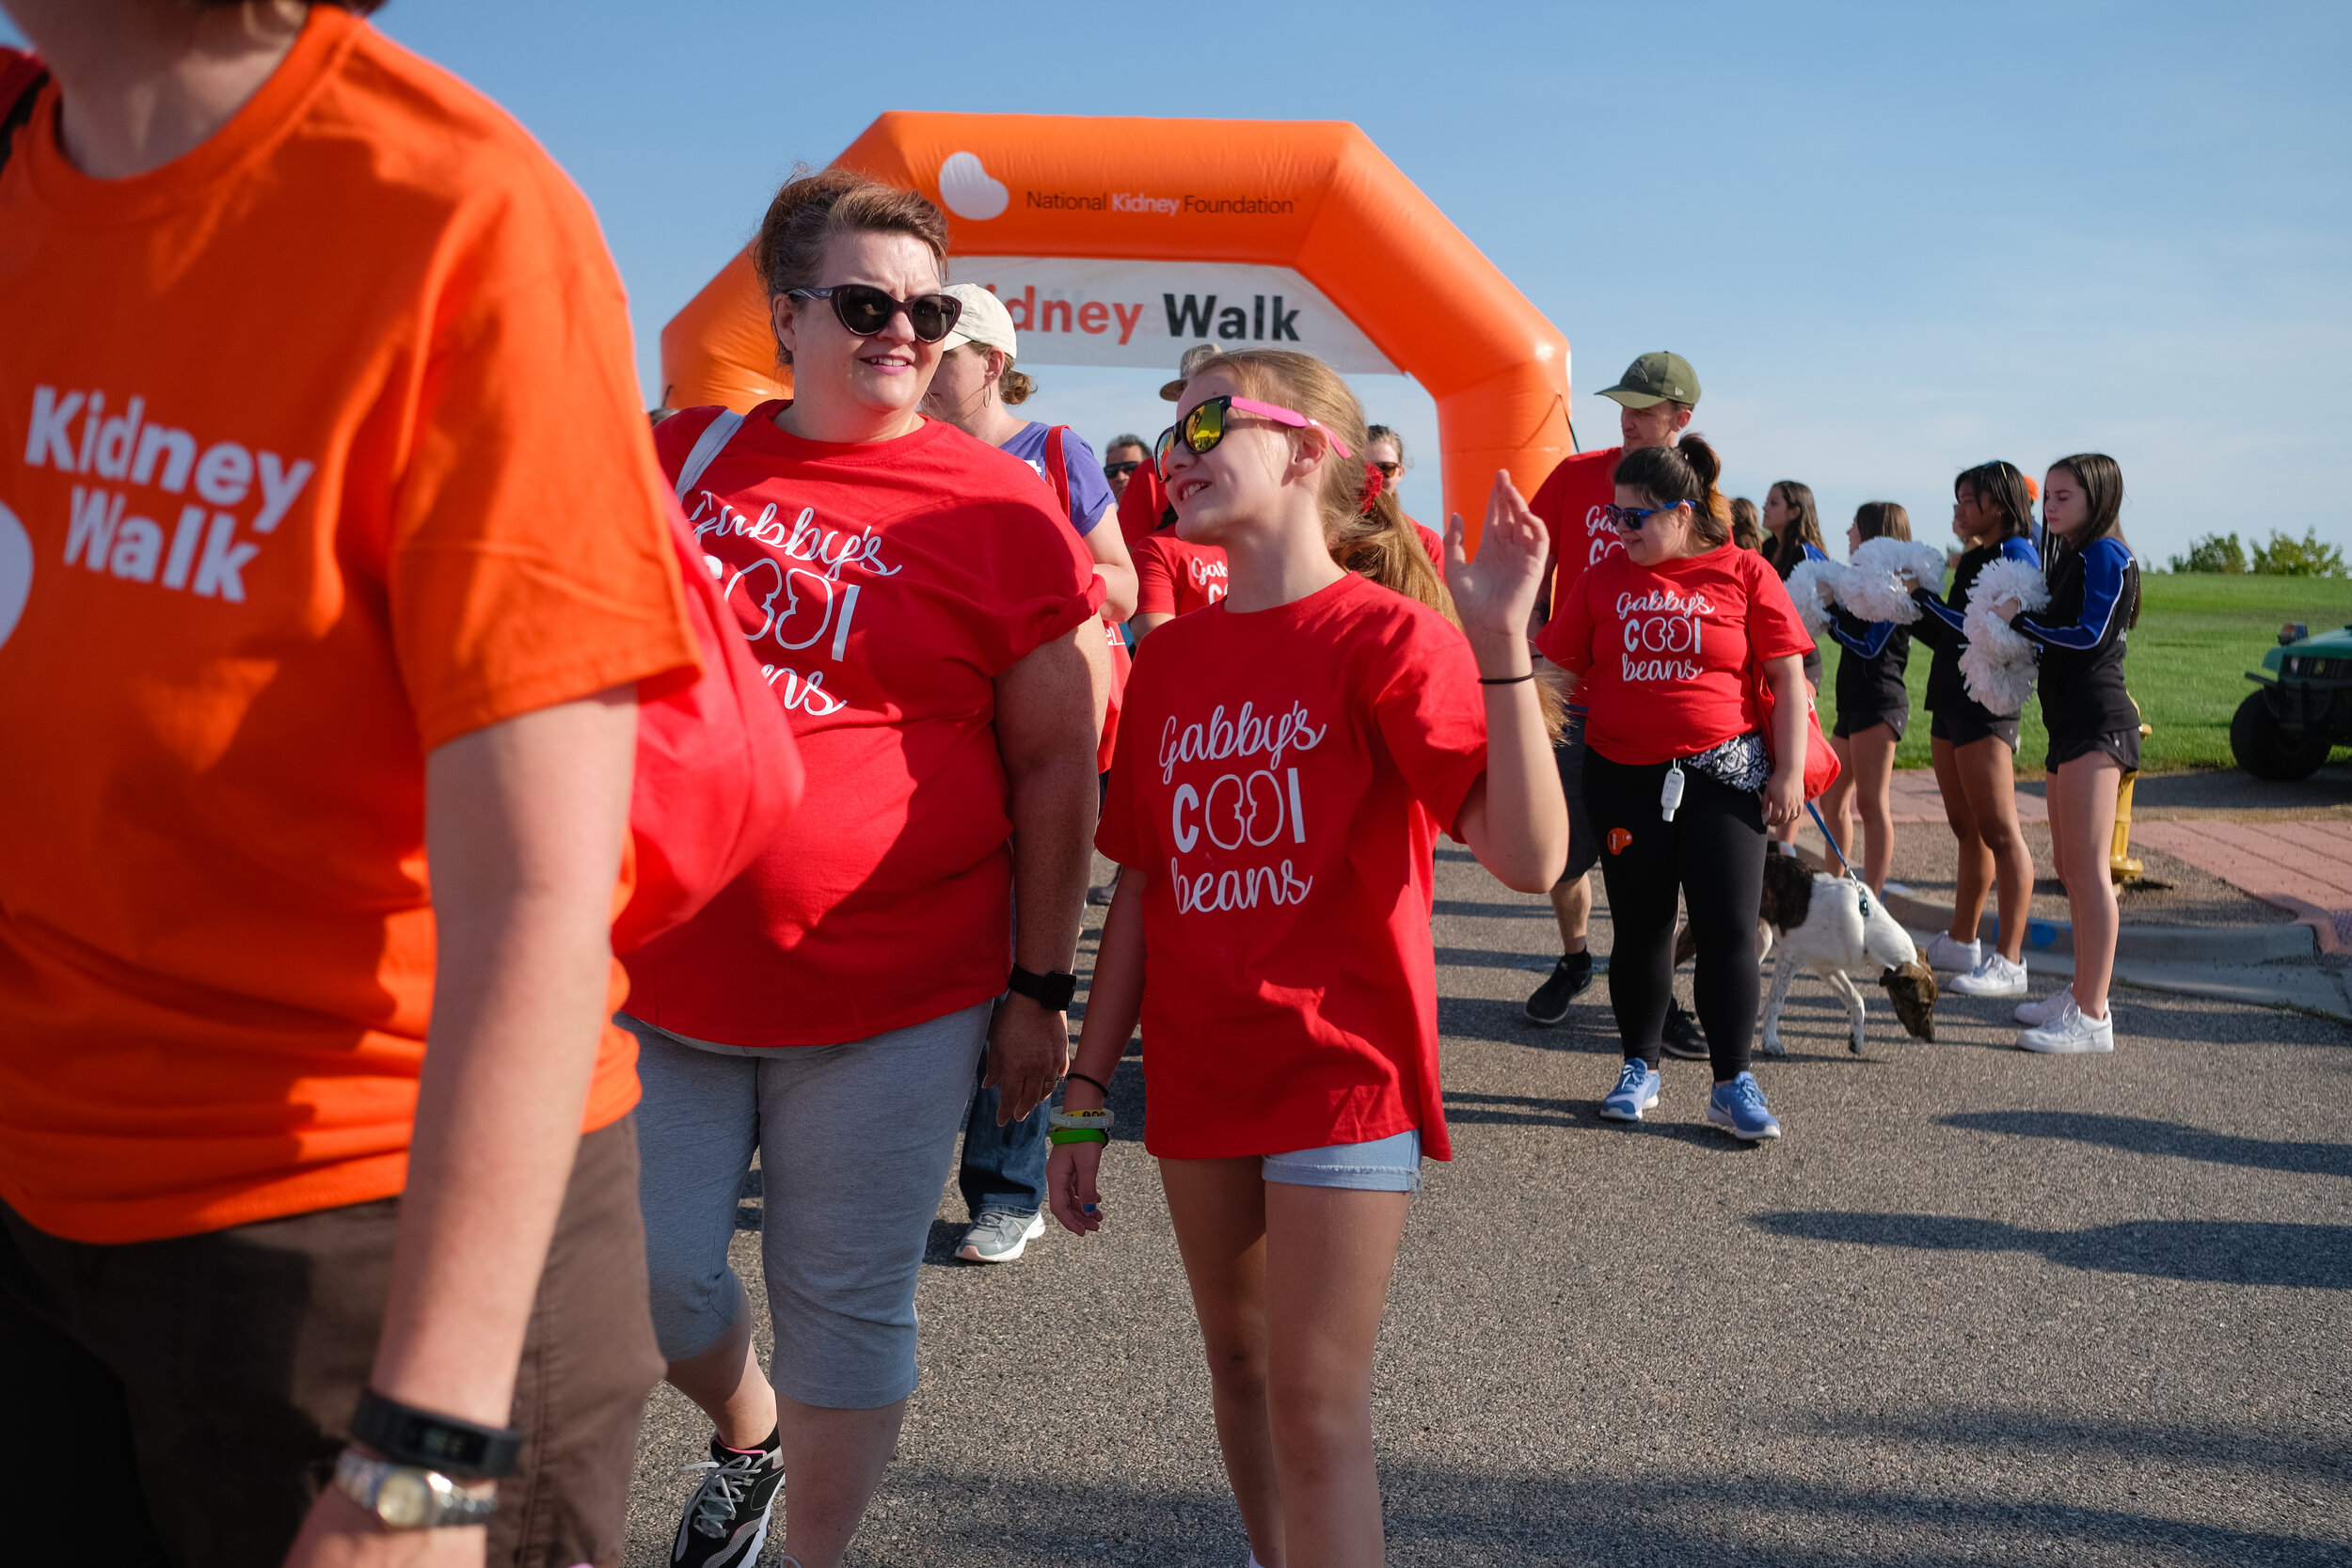 Denver Kidney Walk-101.jpg